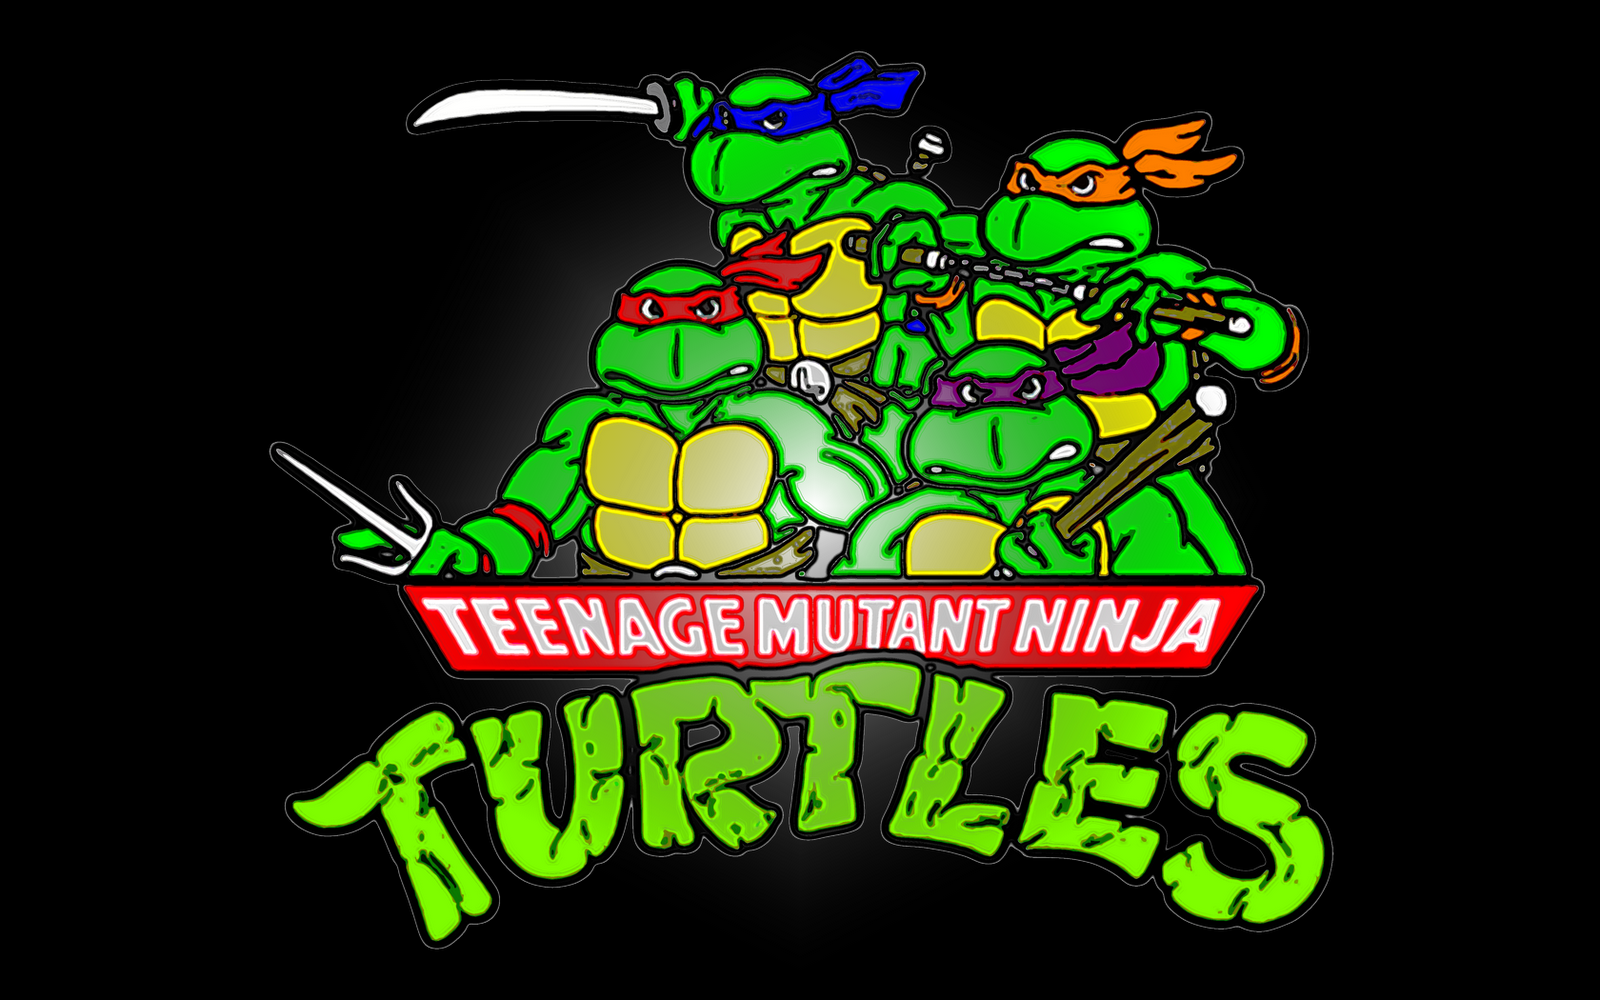 desktop wallpaper: teenage mutant ninja turtles hd logo wallpaper